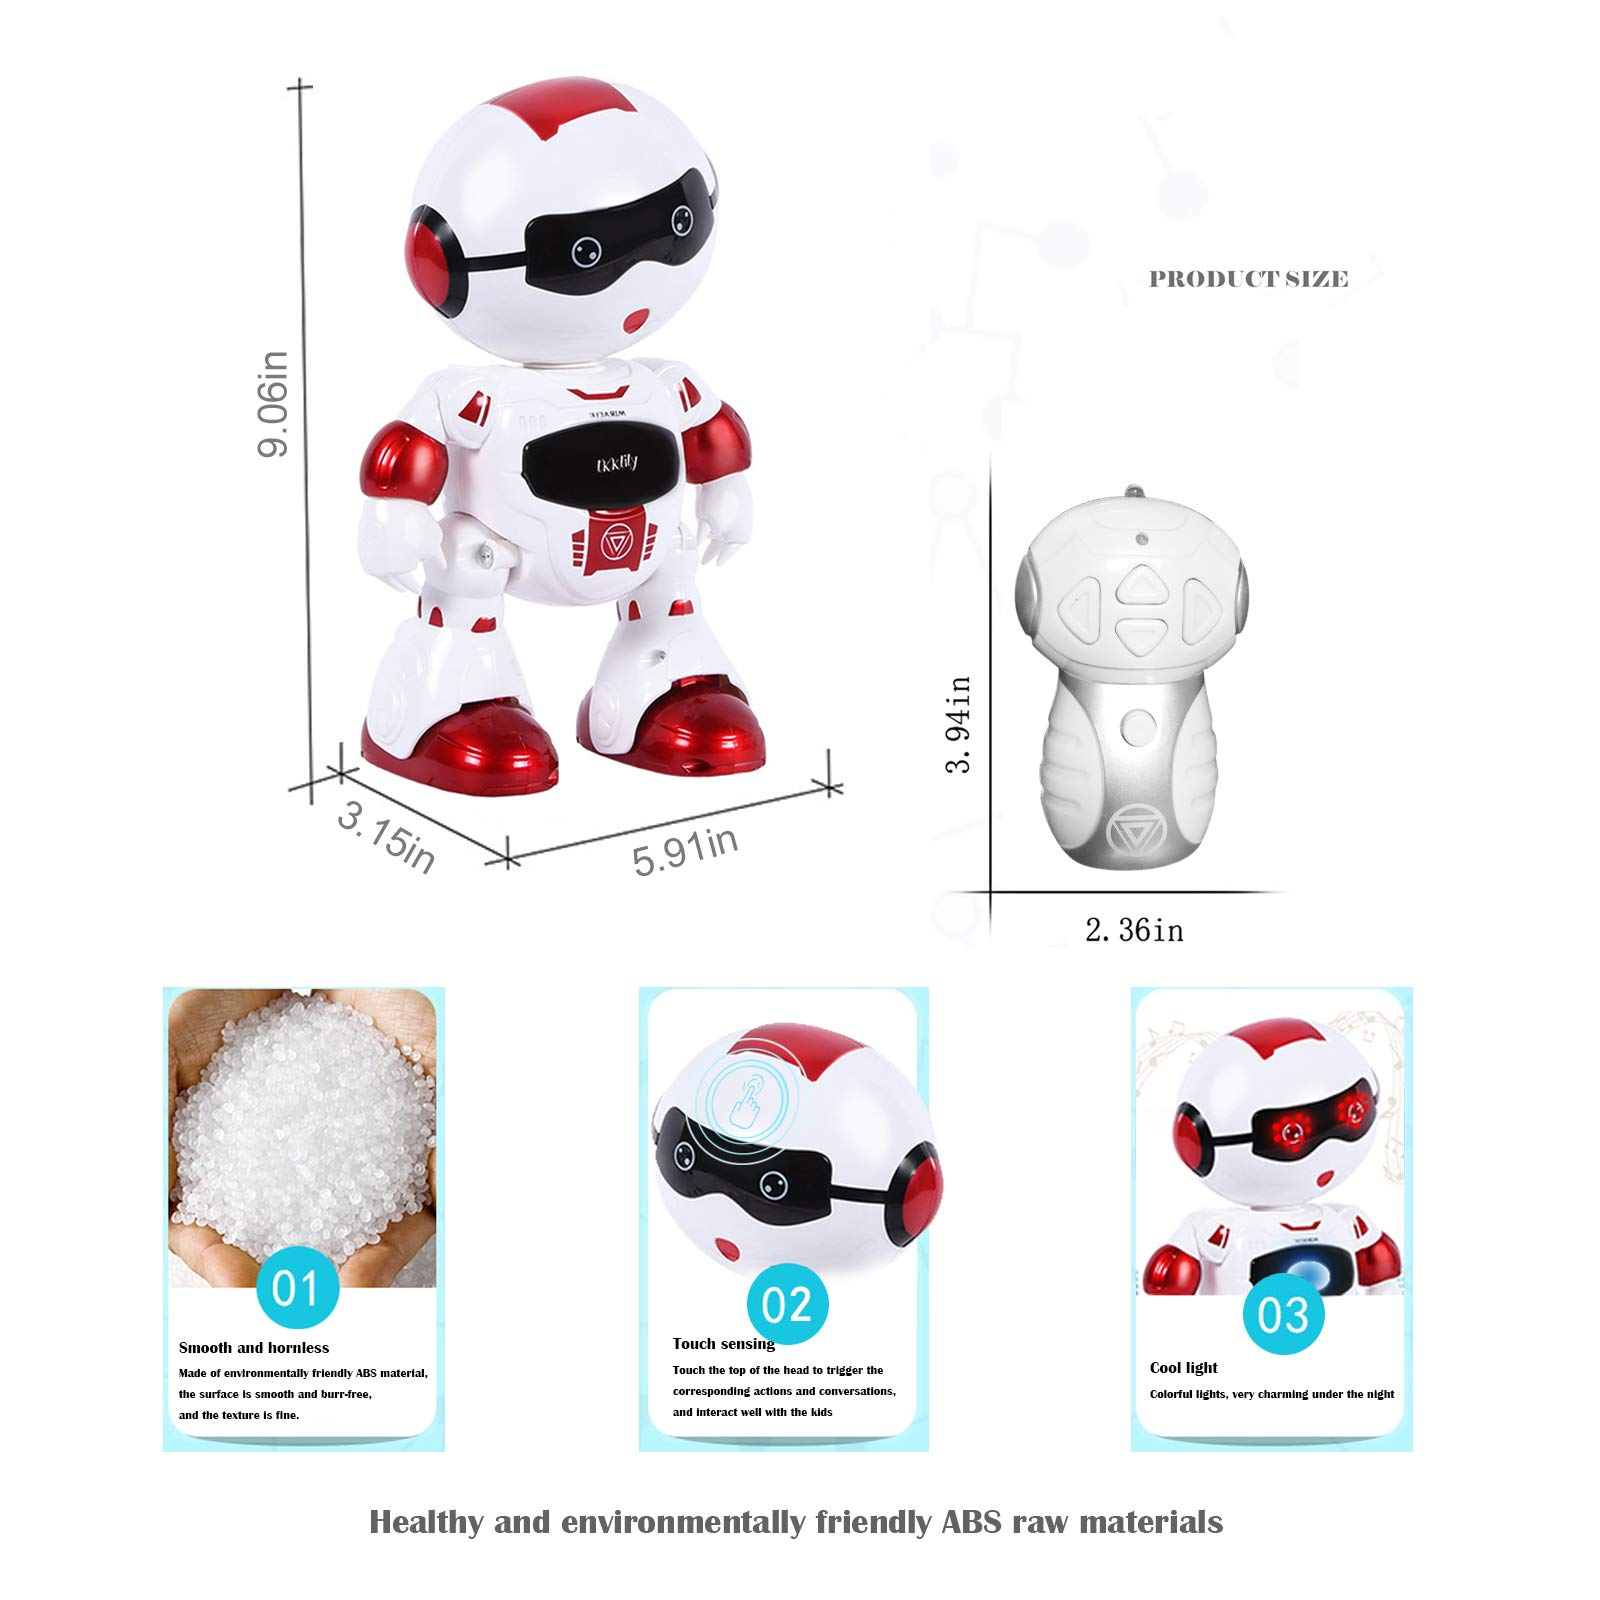 LKKLILY Remote Control Robot with Touch Interaction Music Dance and Lights Remote Toy for Children Kids and Kids Gifts (Red) by LKKLILY (Image #6)